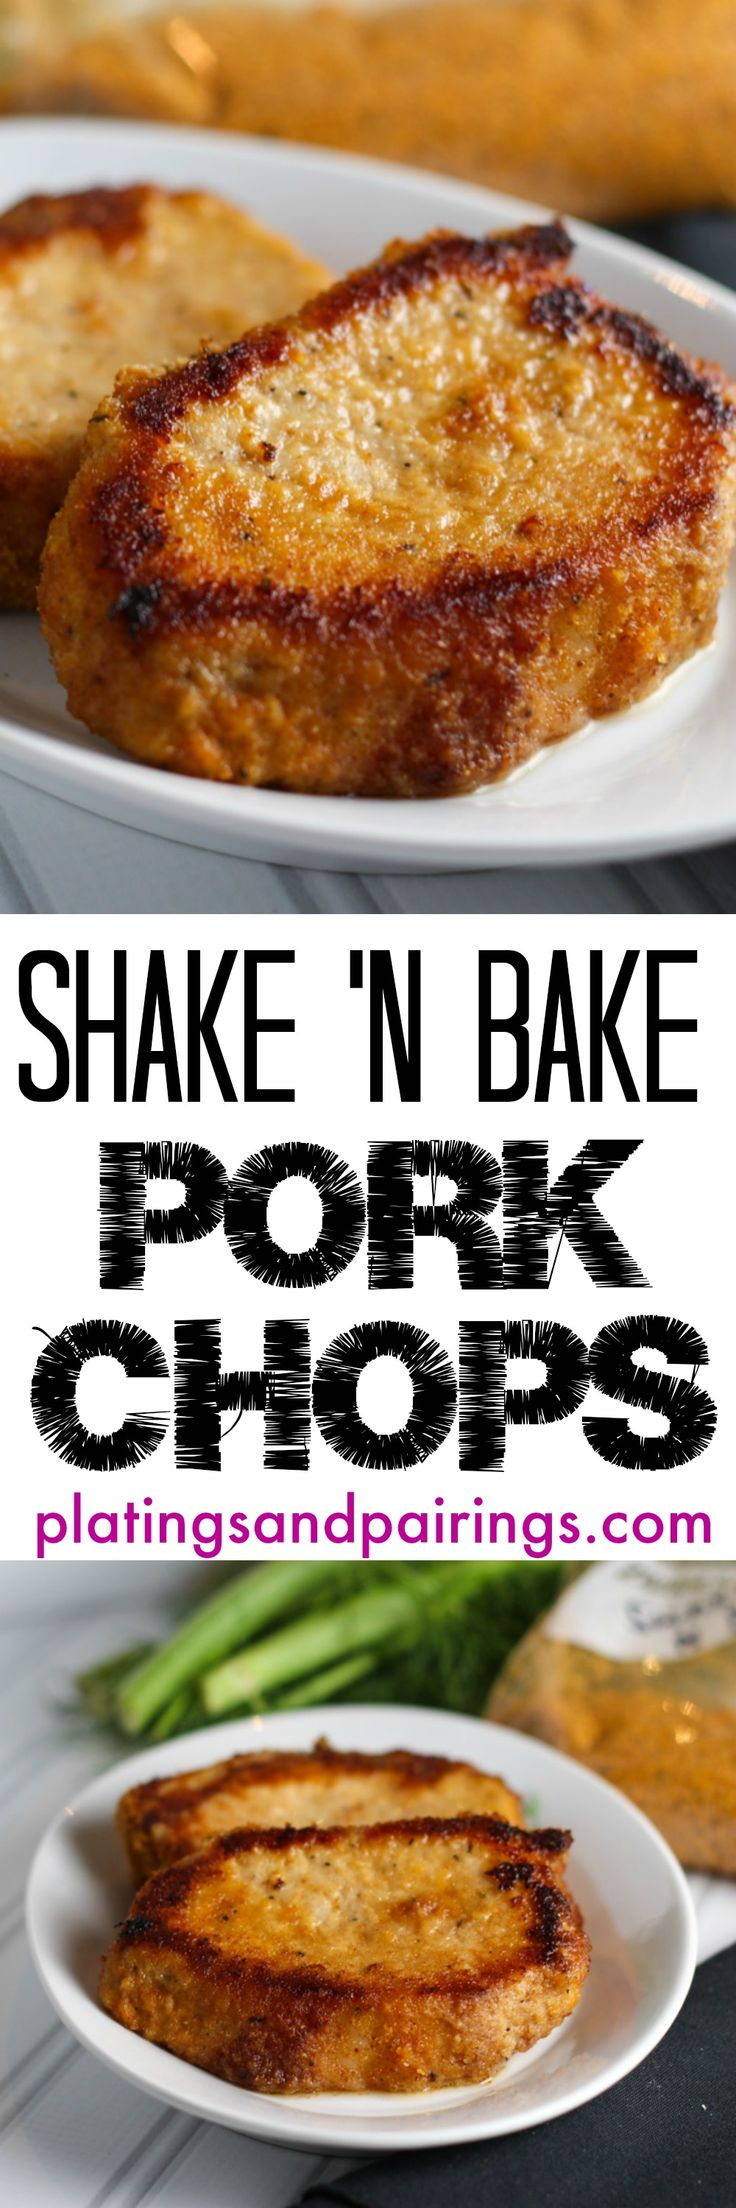 Homemade Shake N Bake - Crispy, Golden, Delicious Pork Chops!!! SO EASY to Make!